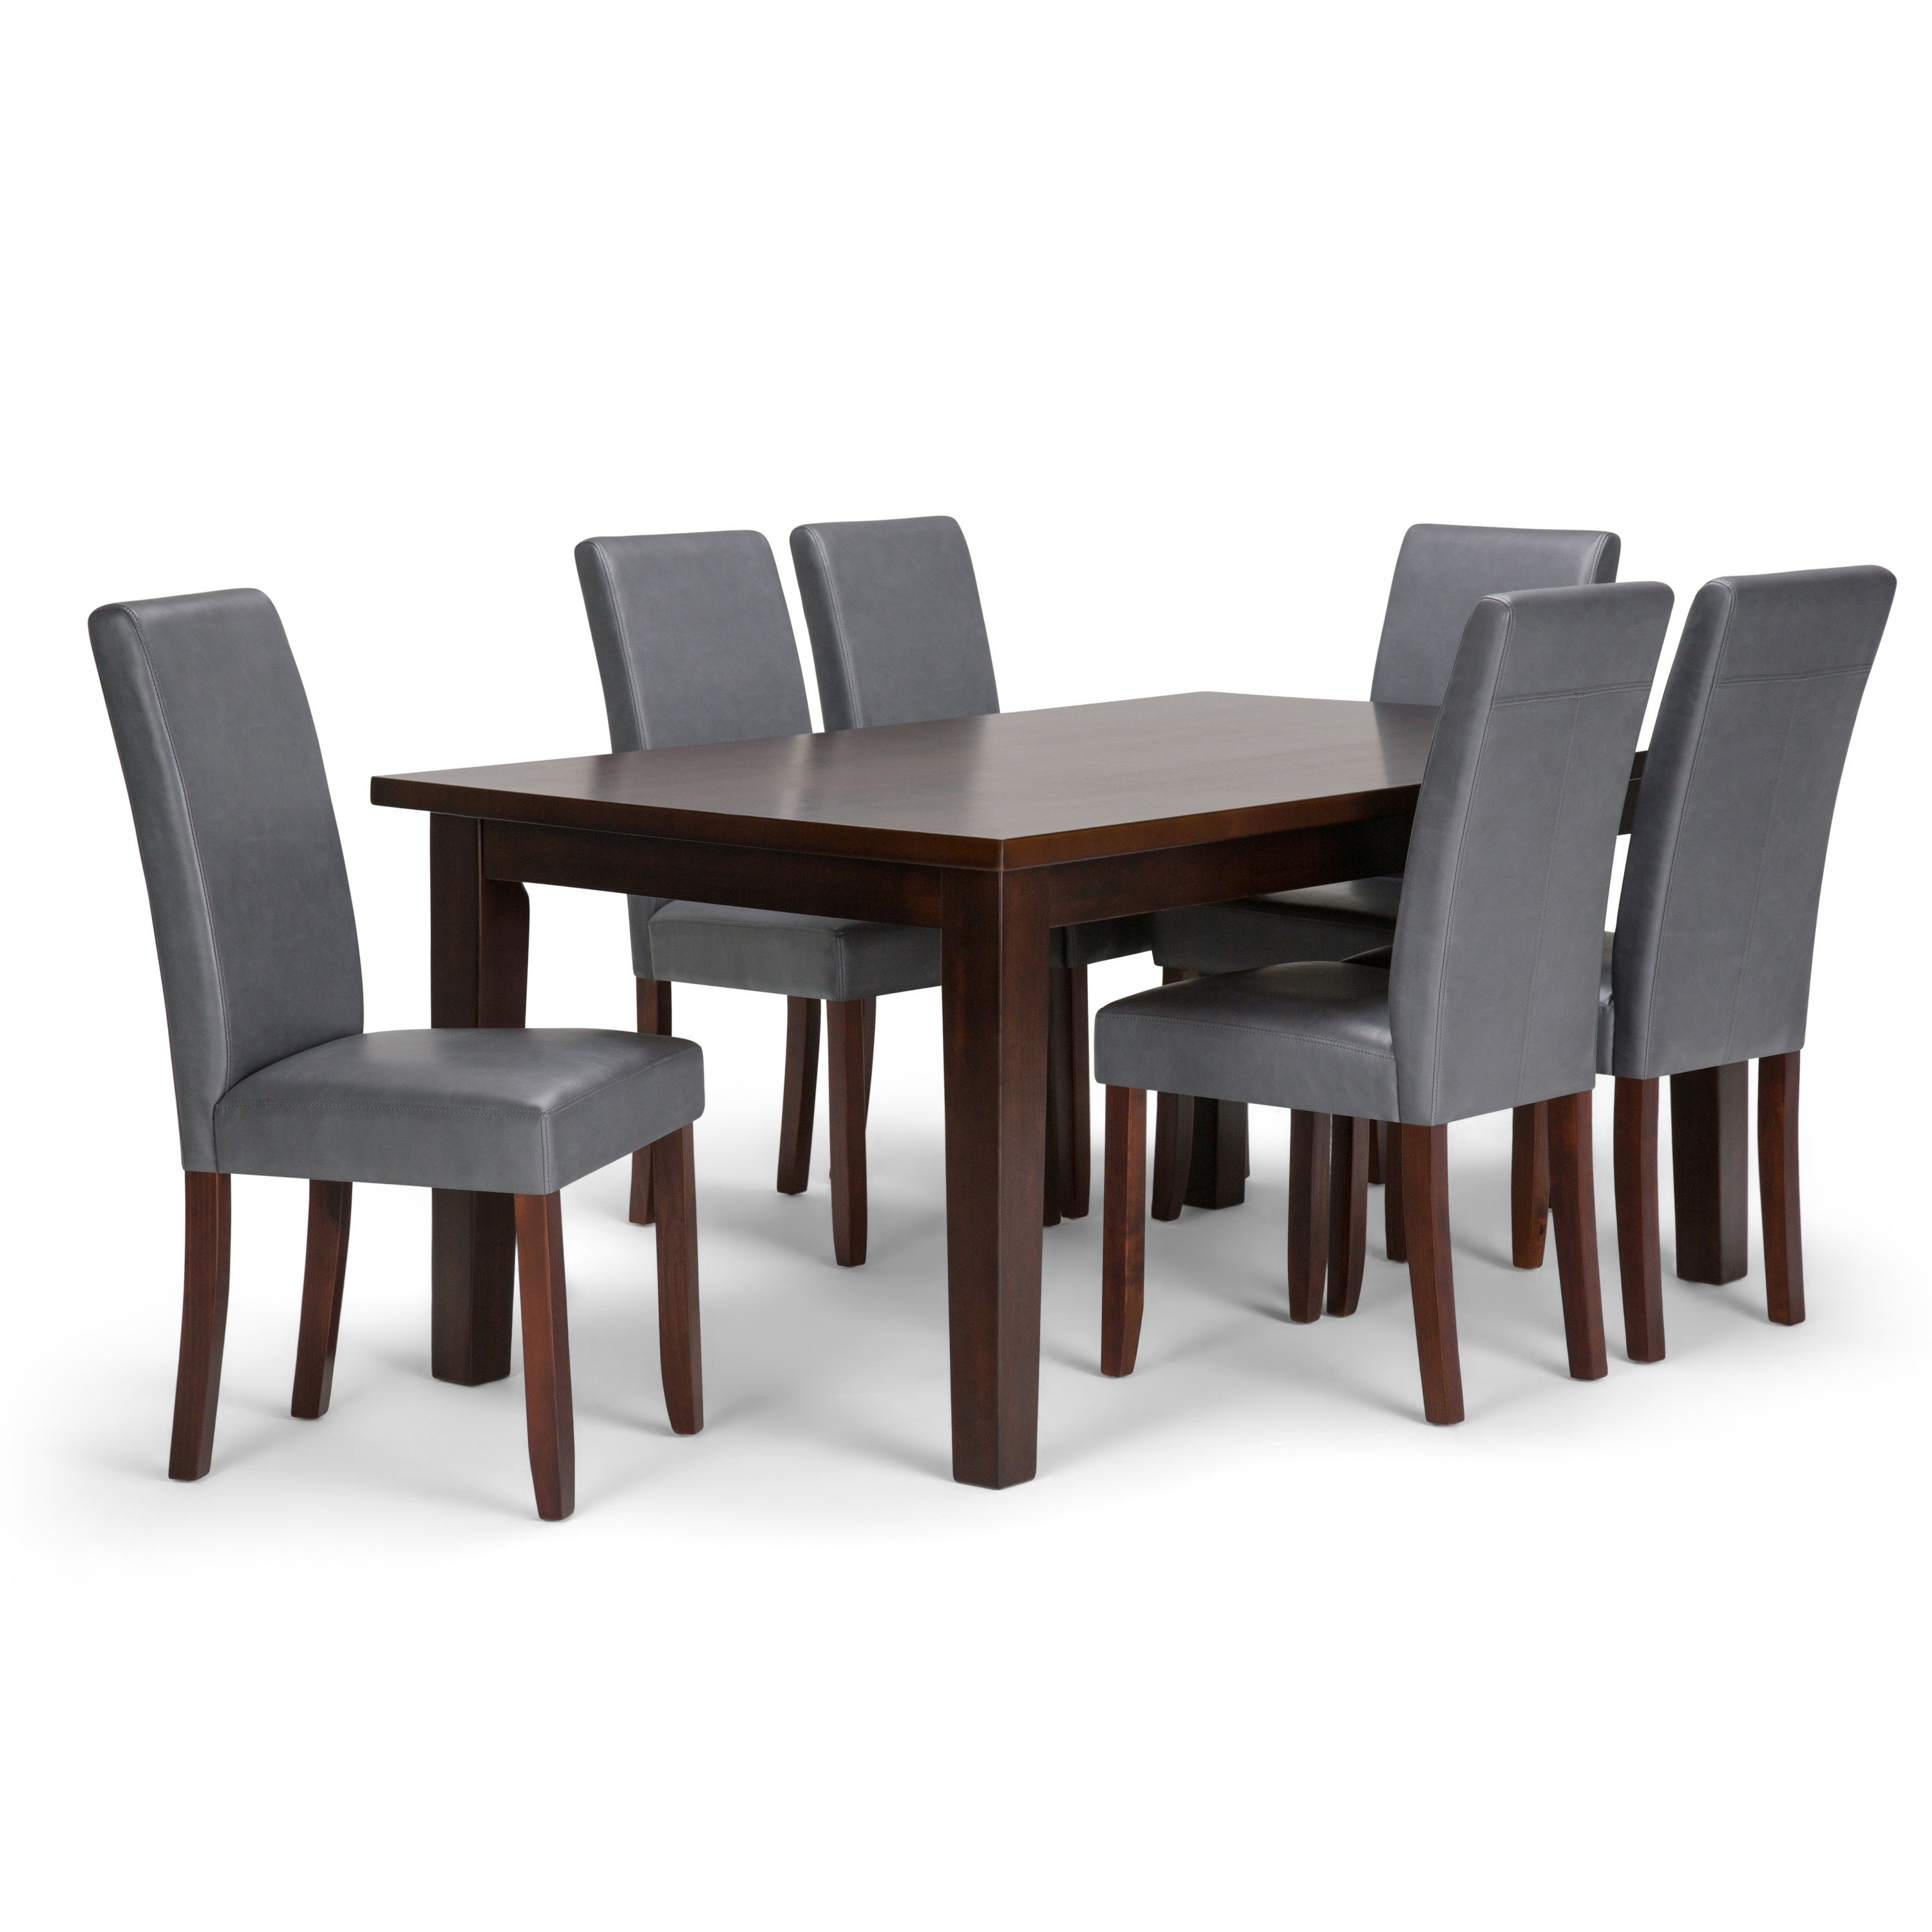 Simpli Home Acadian 7 Piece Dining Set | Wayfair Intended For 2017 Walden 7 Piece Extension Dining Sets (Image 9 of 20)